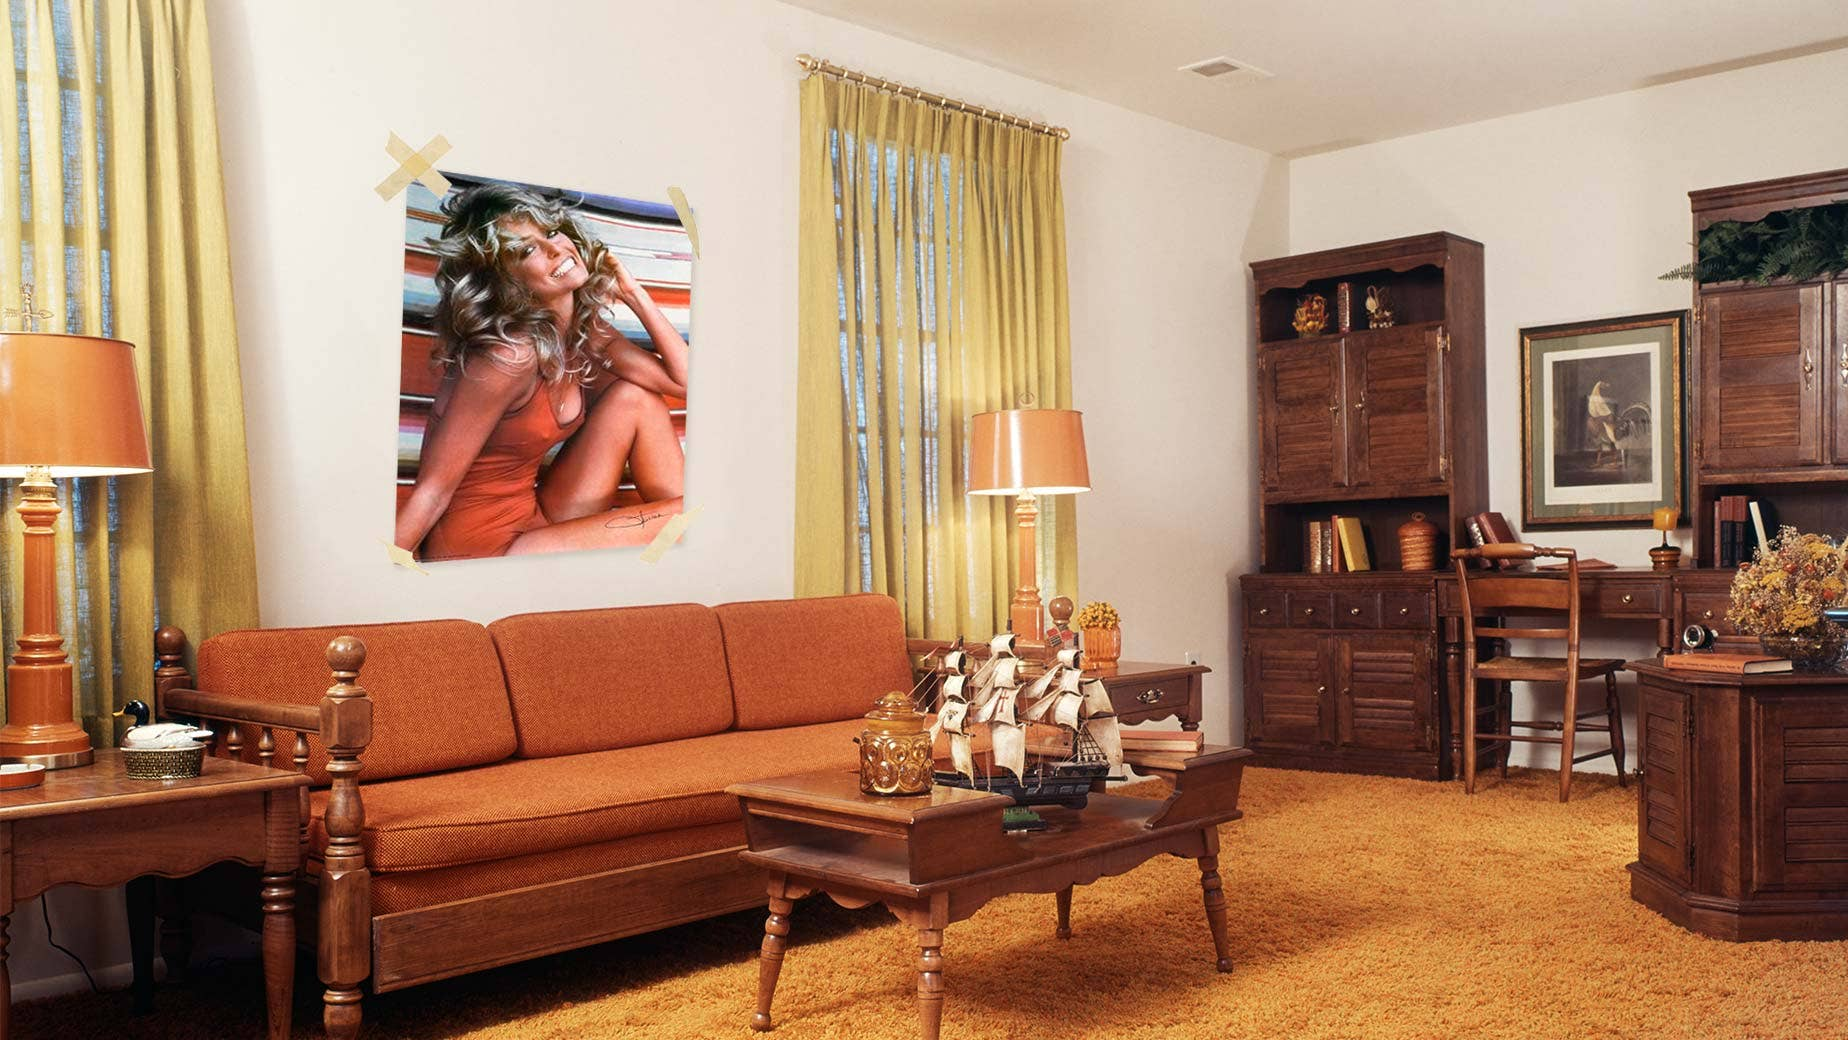 Worst home decor ideas of the 1970s fox news for Home decor 1970s